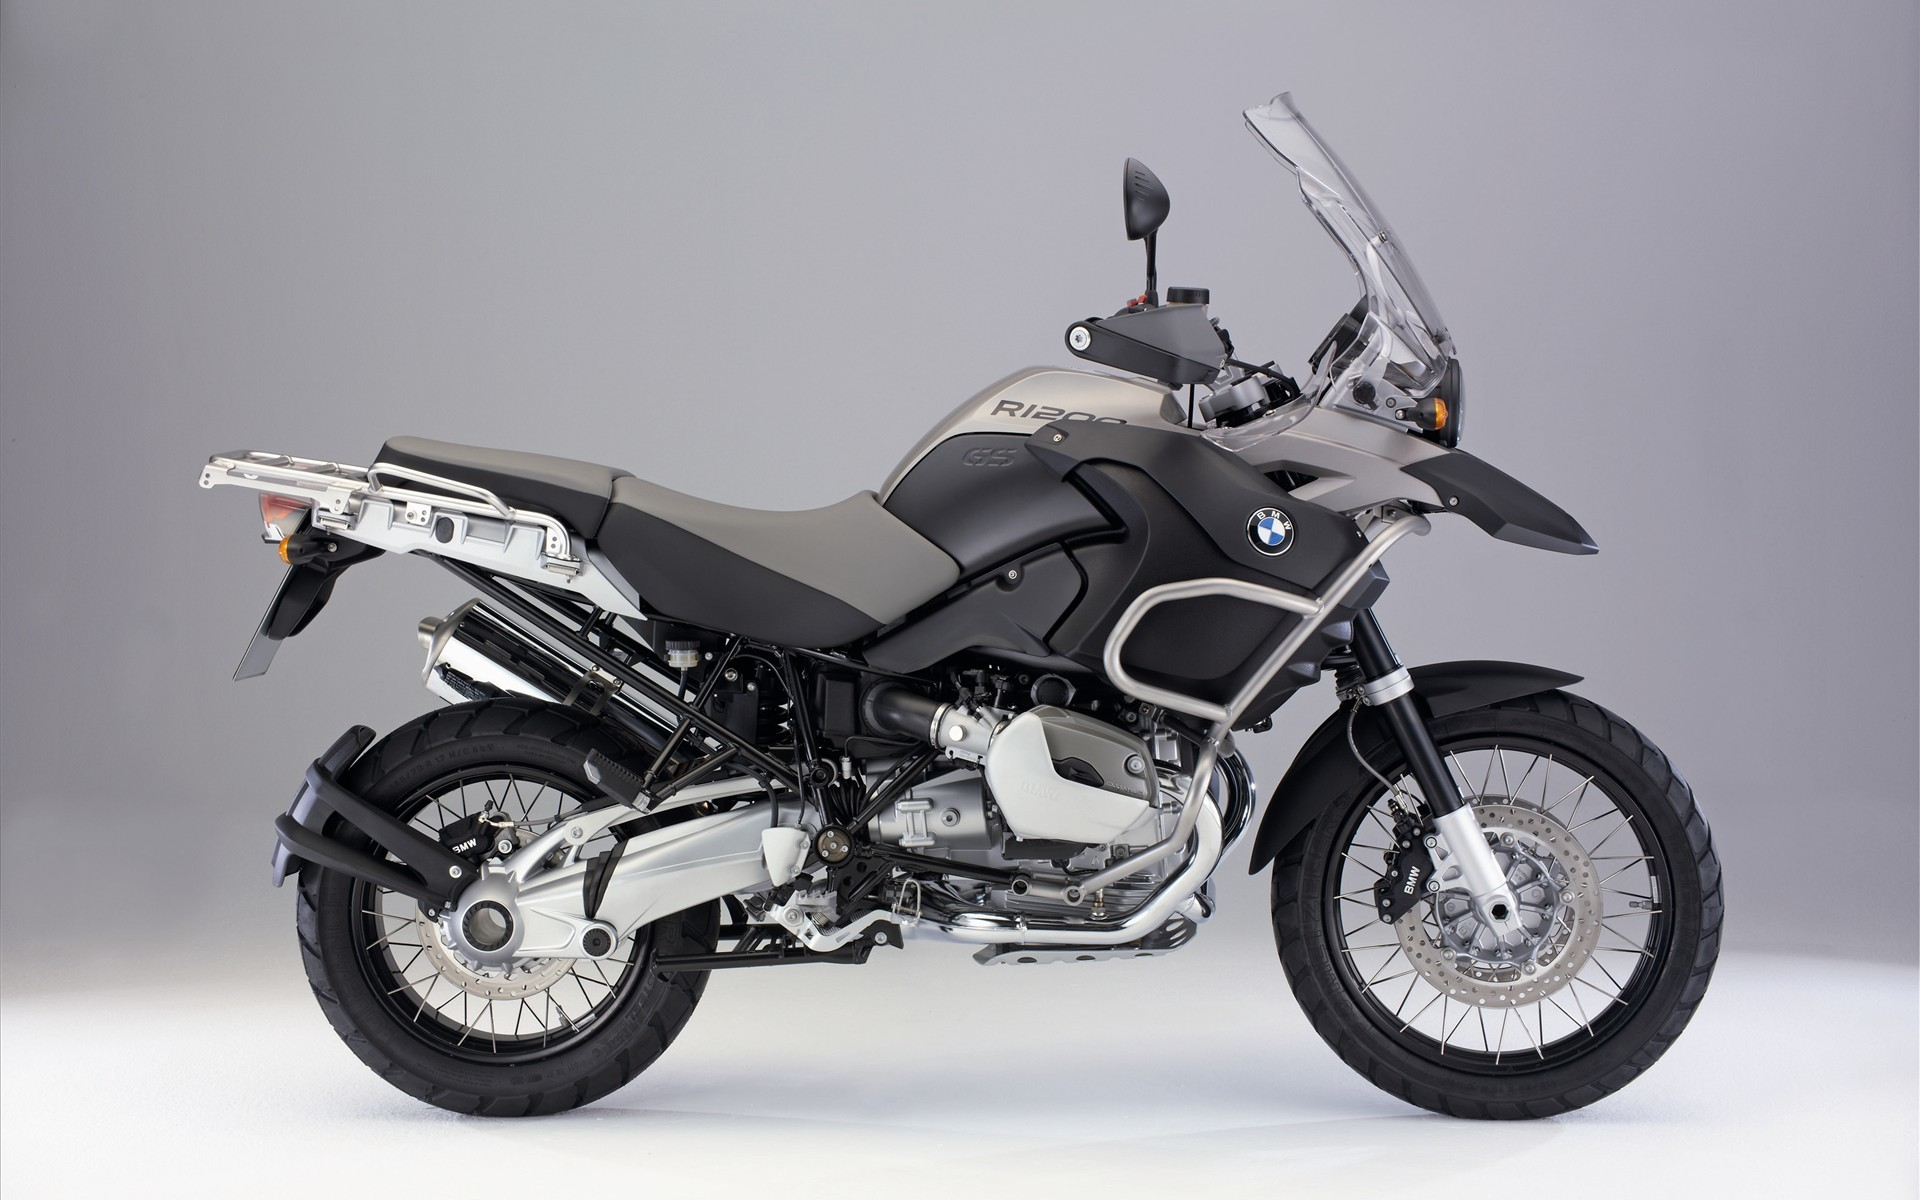 Download BMW 1200 R Motorcycles Pictures for free to set as dekstop  background. This image